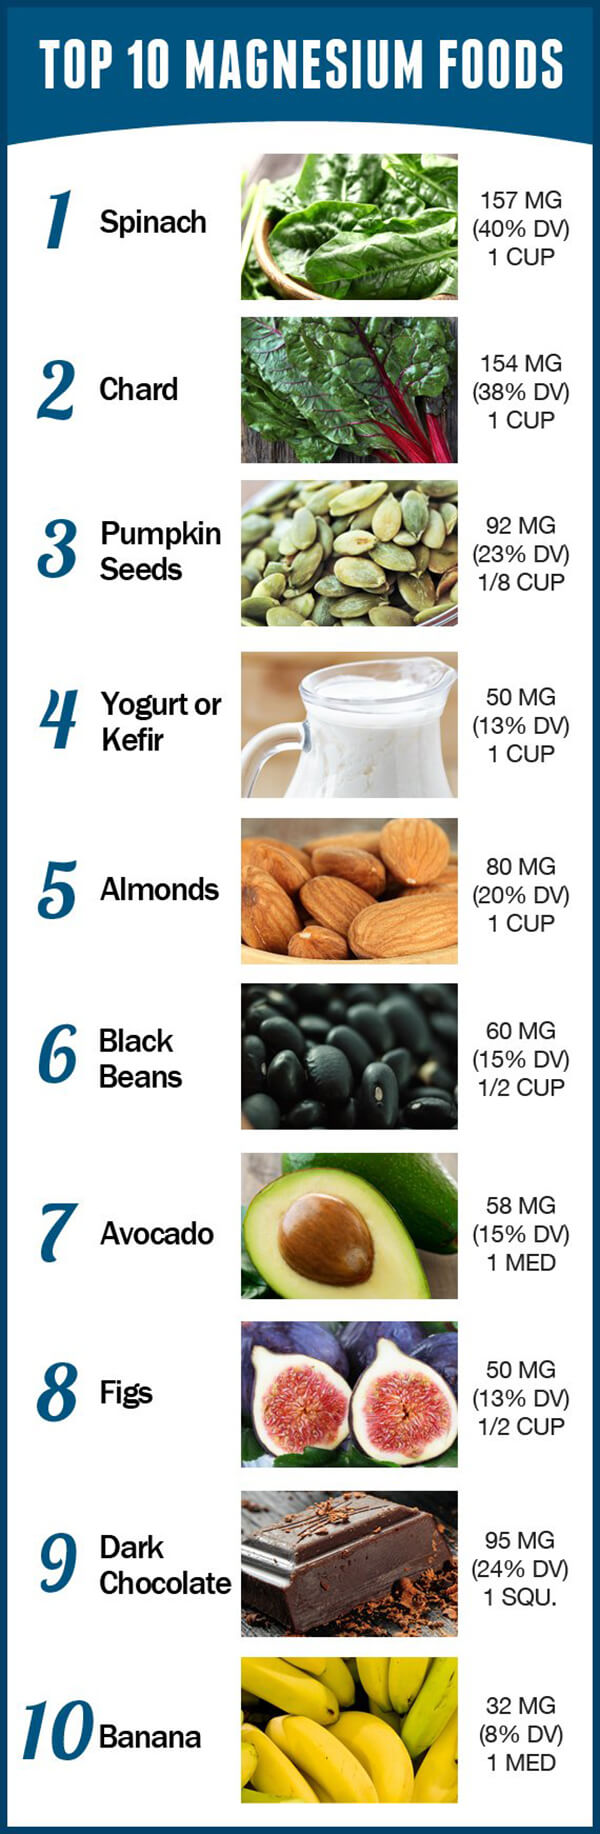 Top 10 Magnesium Foods - Spinach Chard Healthy Fitness Tips Figs